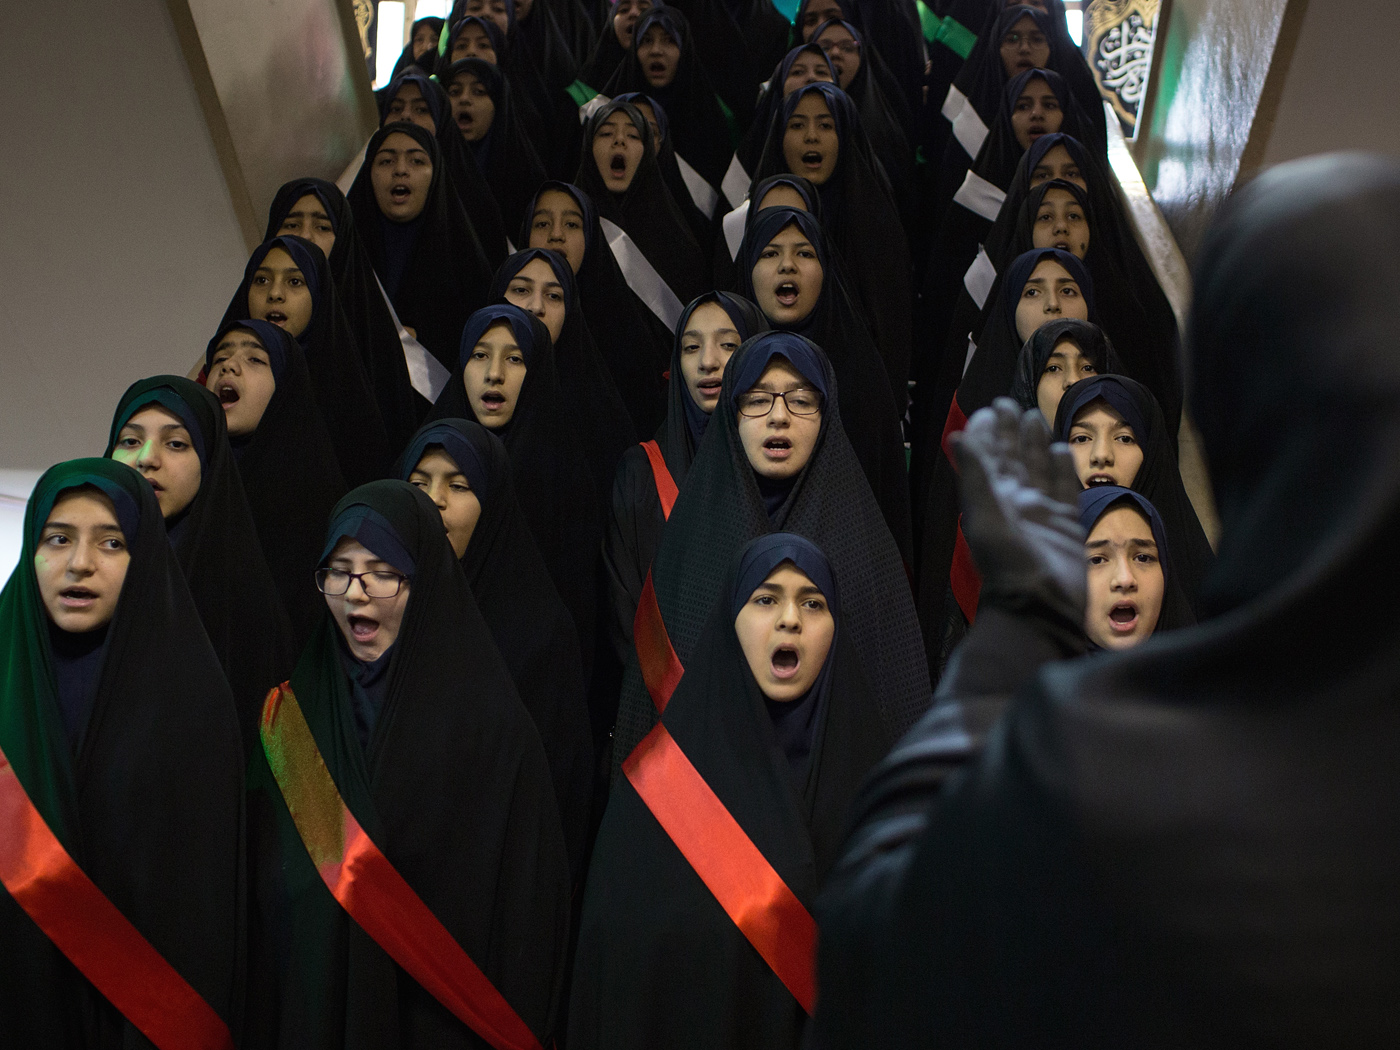 6th graders of Refah girls' elementary school in Tehran sing anthems from the Iran-Iraq War in choir on Saturday, February 2nd, 2019 as a part of an event commemorating the arrival of Ayatollah Khomeini to this school upon his return from French exile exactly 40 years earlier during the 1979 Revolution.